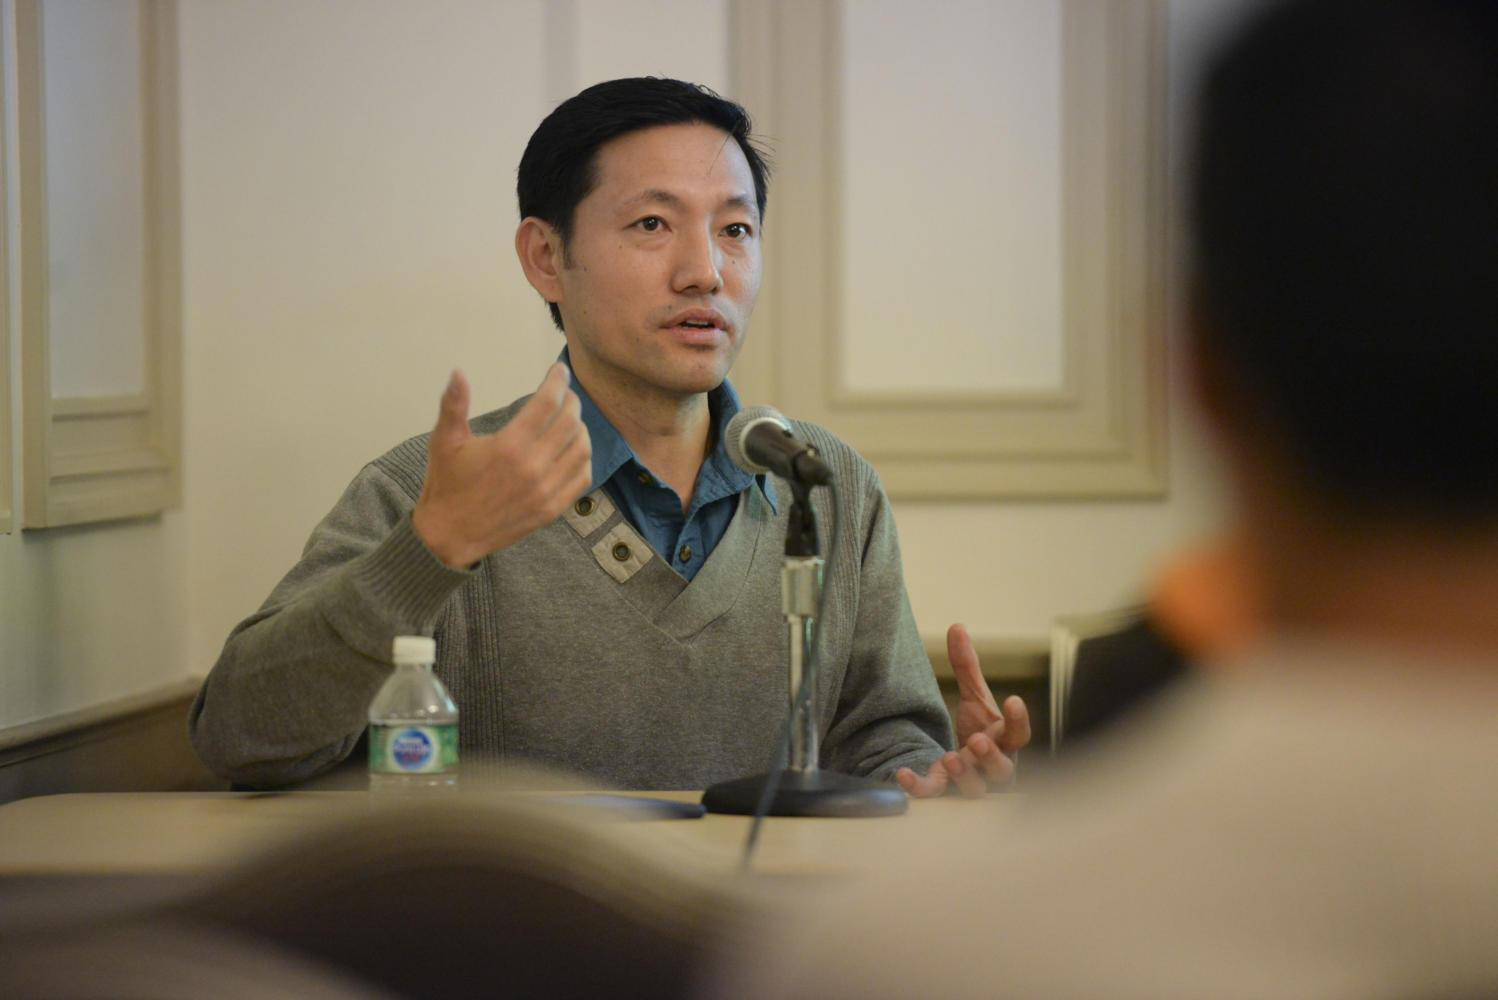 Ashok Gurung, co-founder of the Bhutanese Community Association of Pittsburgh, was one of three panelists in an event Pitt FORGE hosted about refugee mental health. (Photo by Issi Glatts | Staff Photographer)